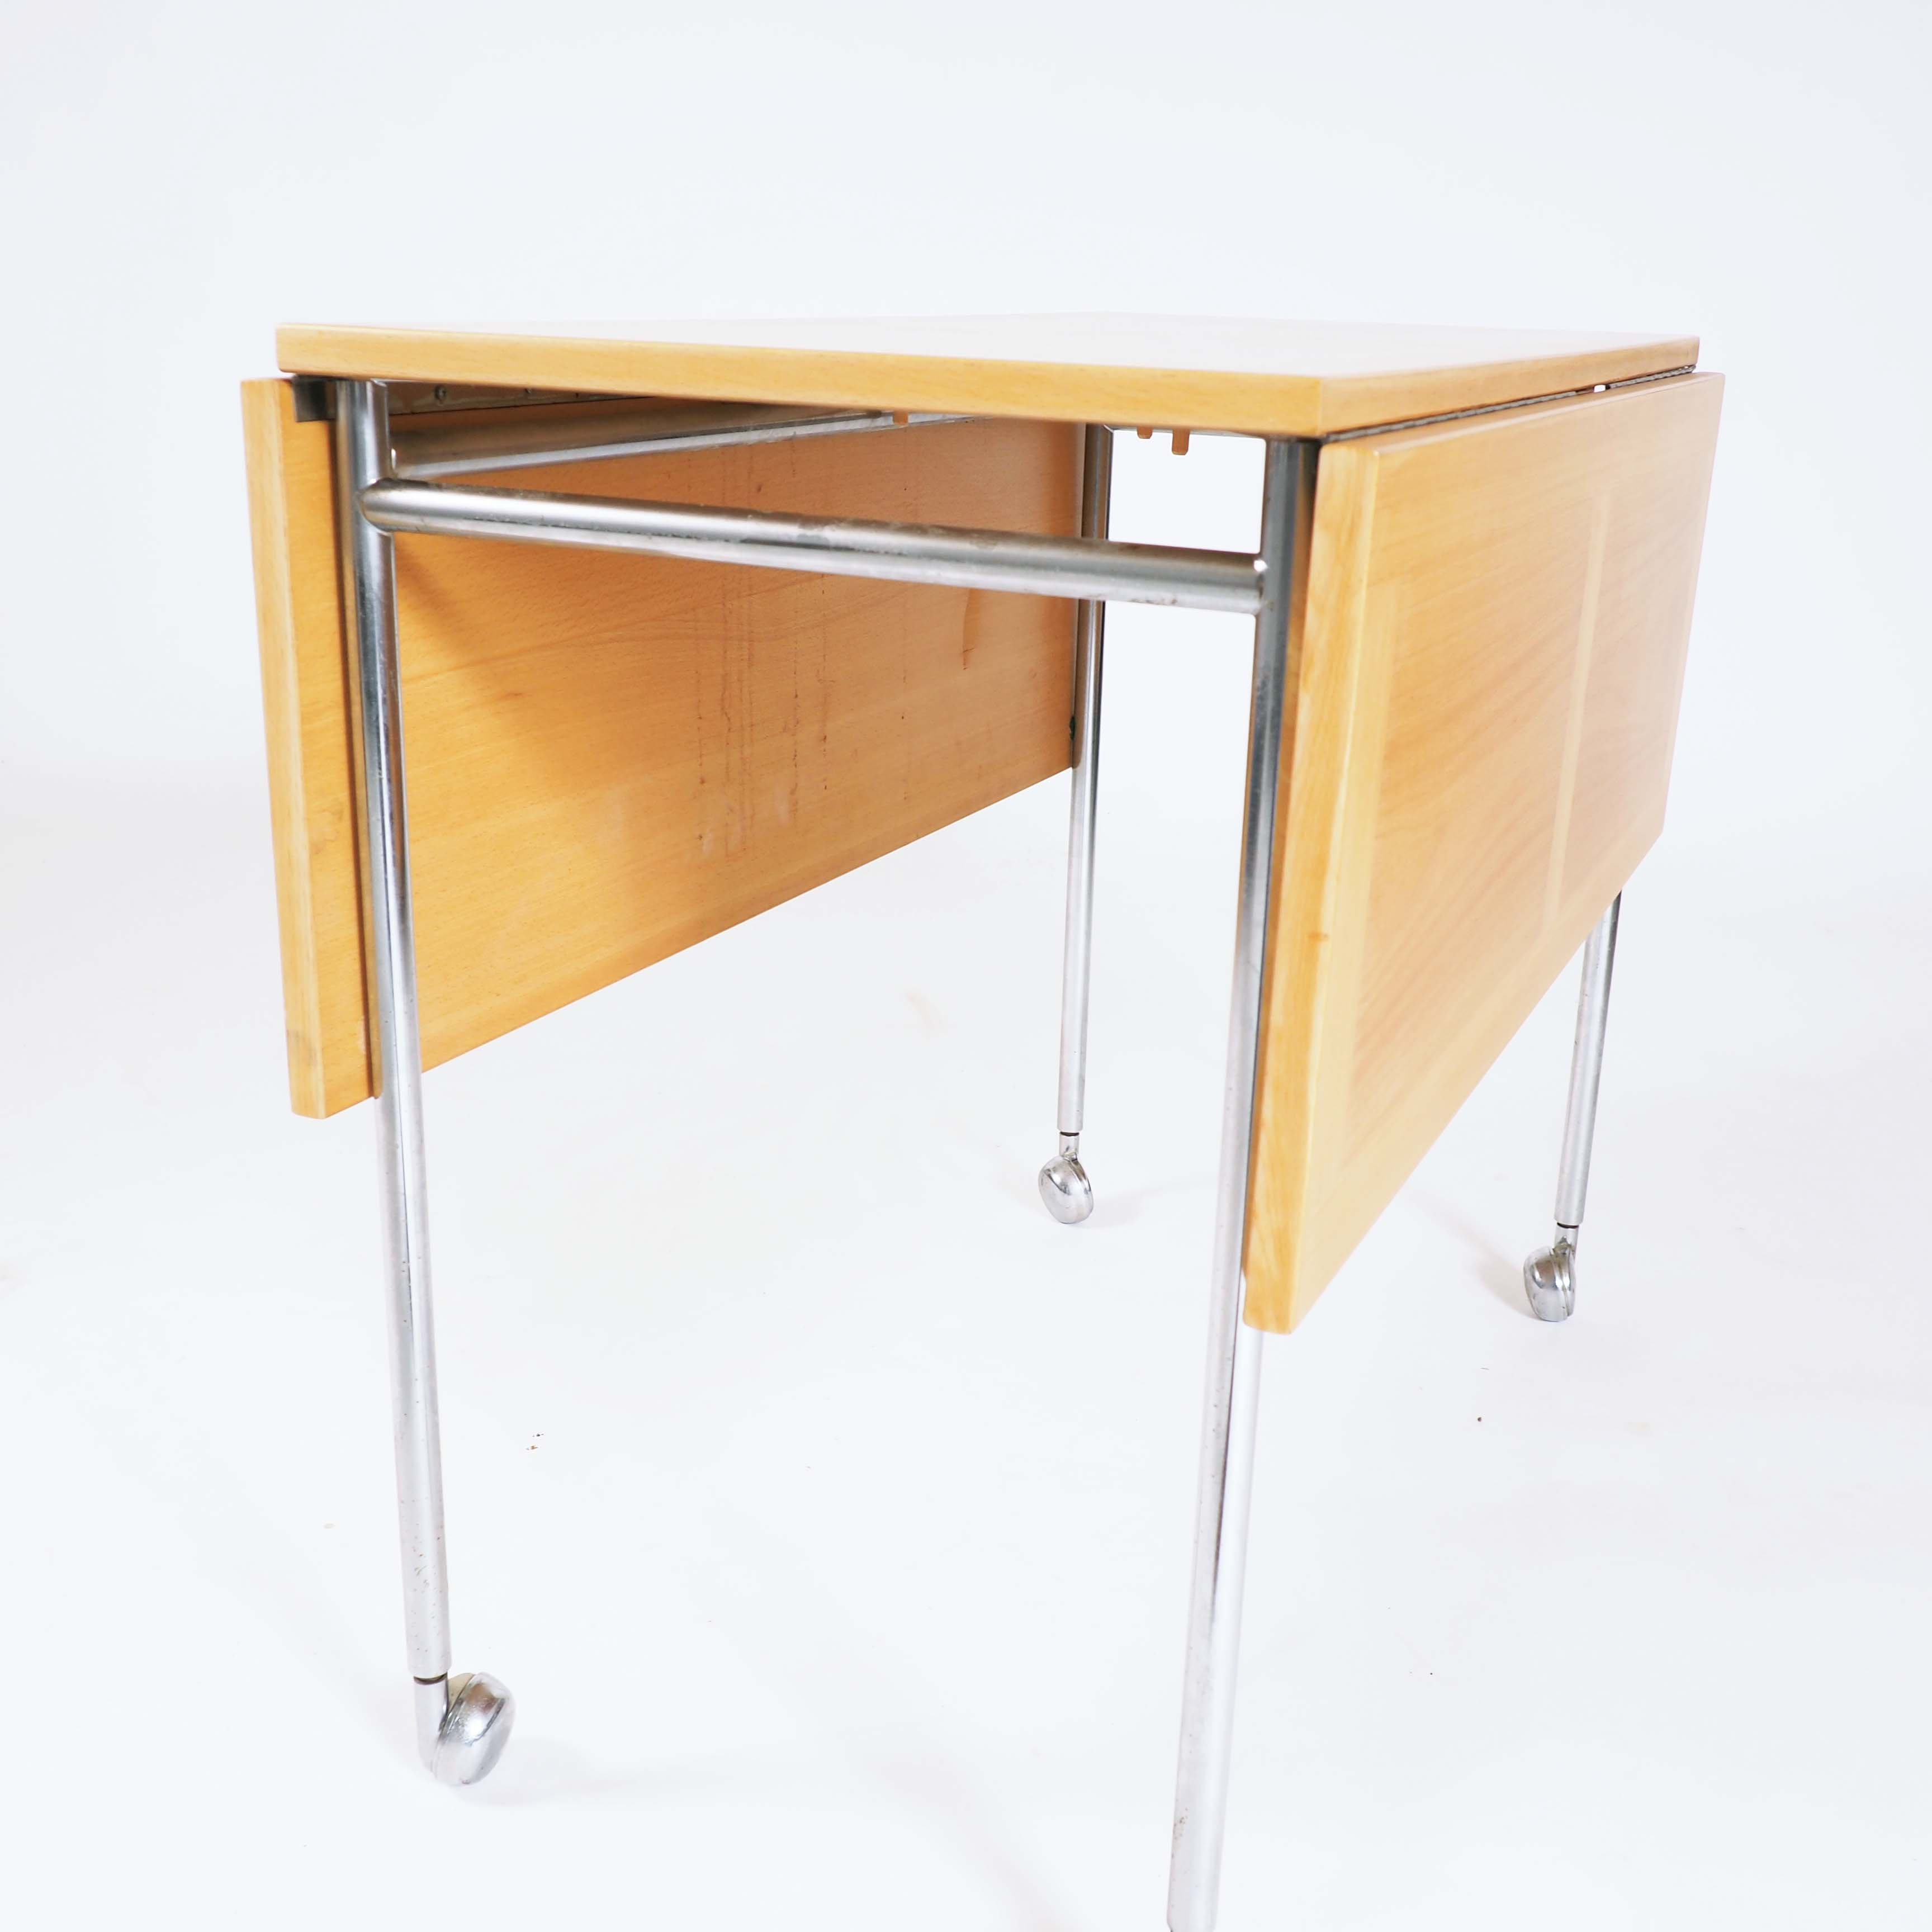 Trolley in beech and chrome, designed by Bruno Mathsson, Sweden